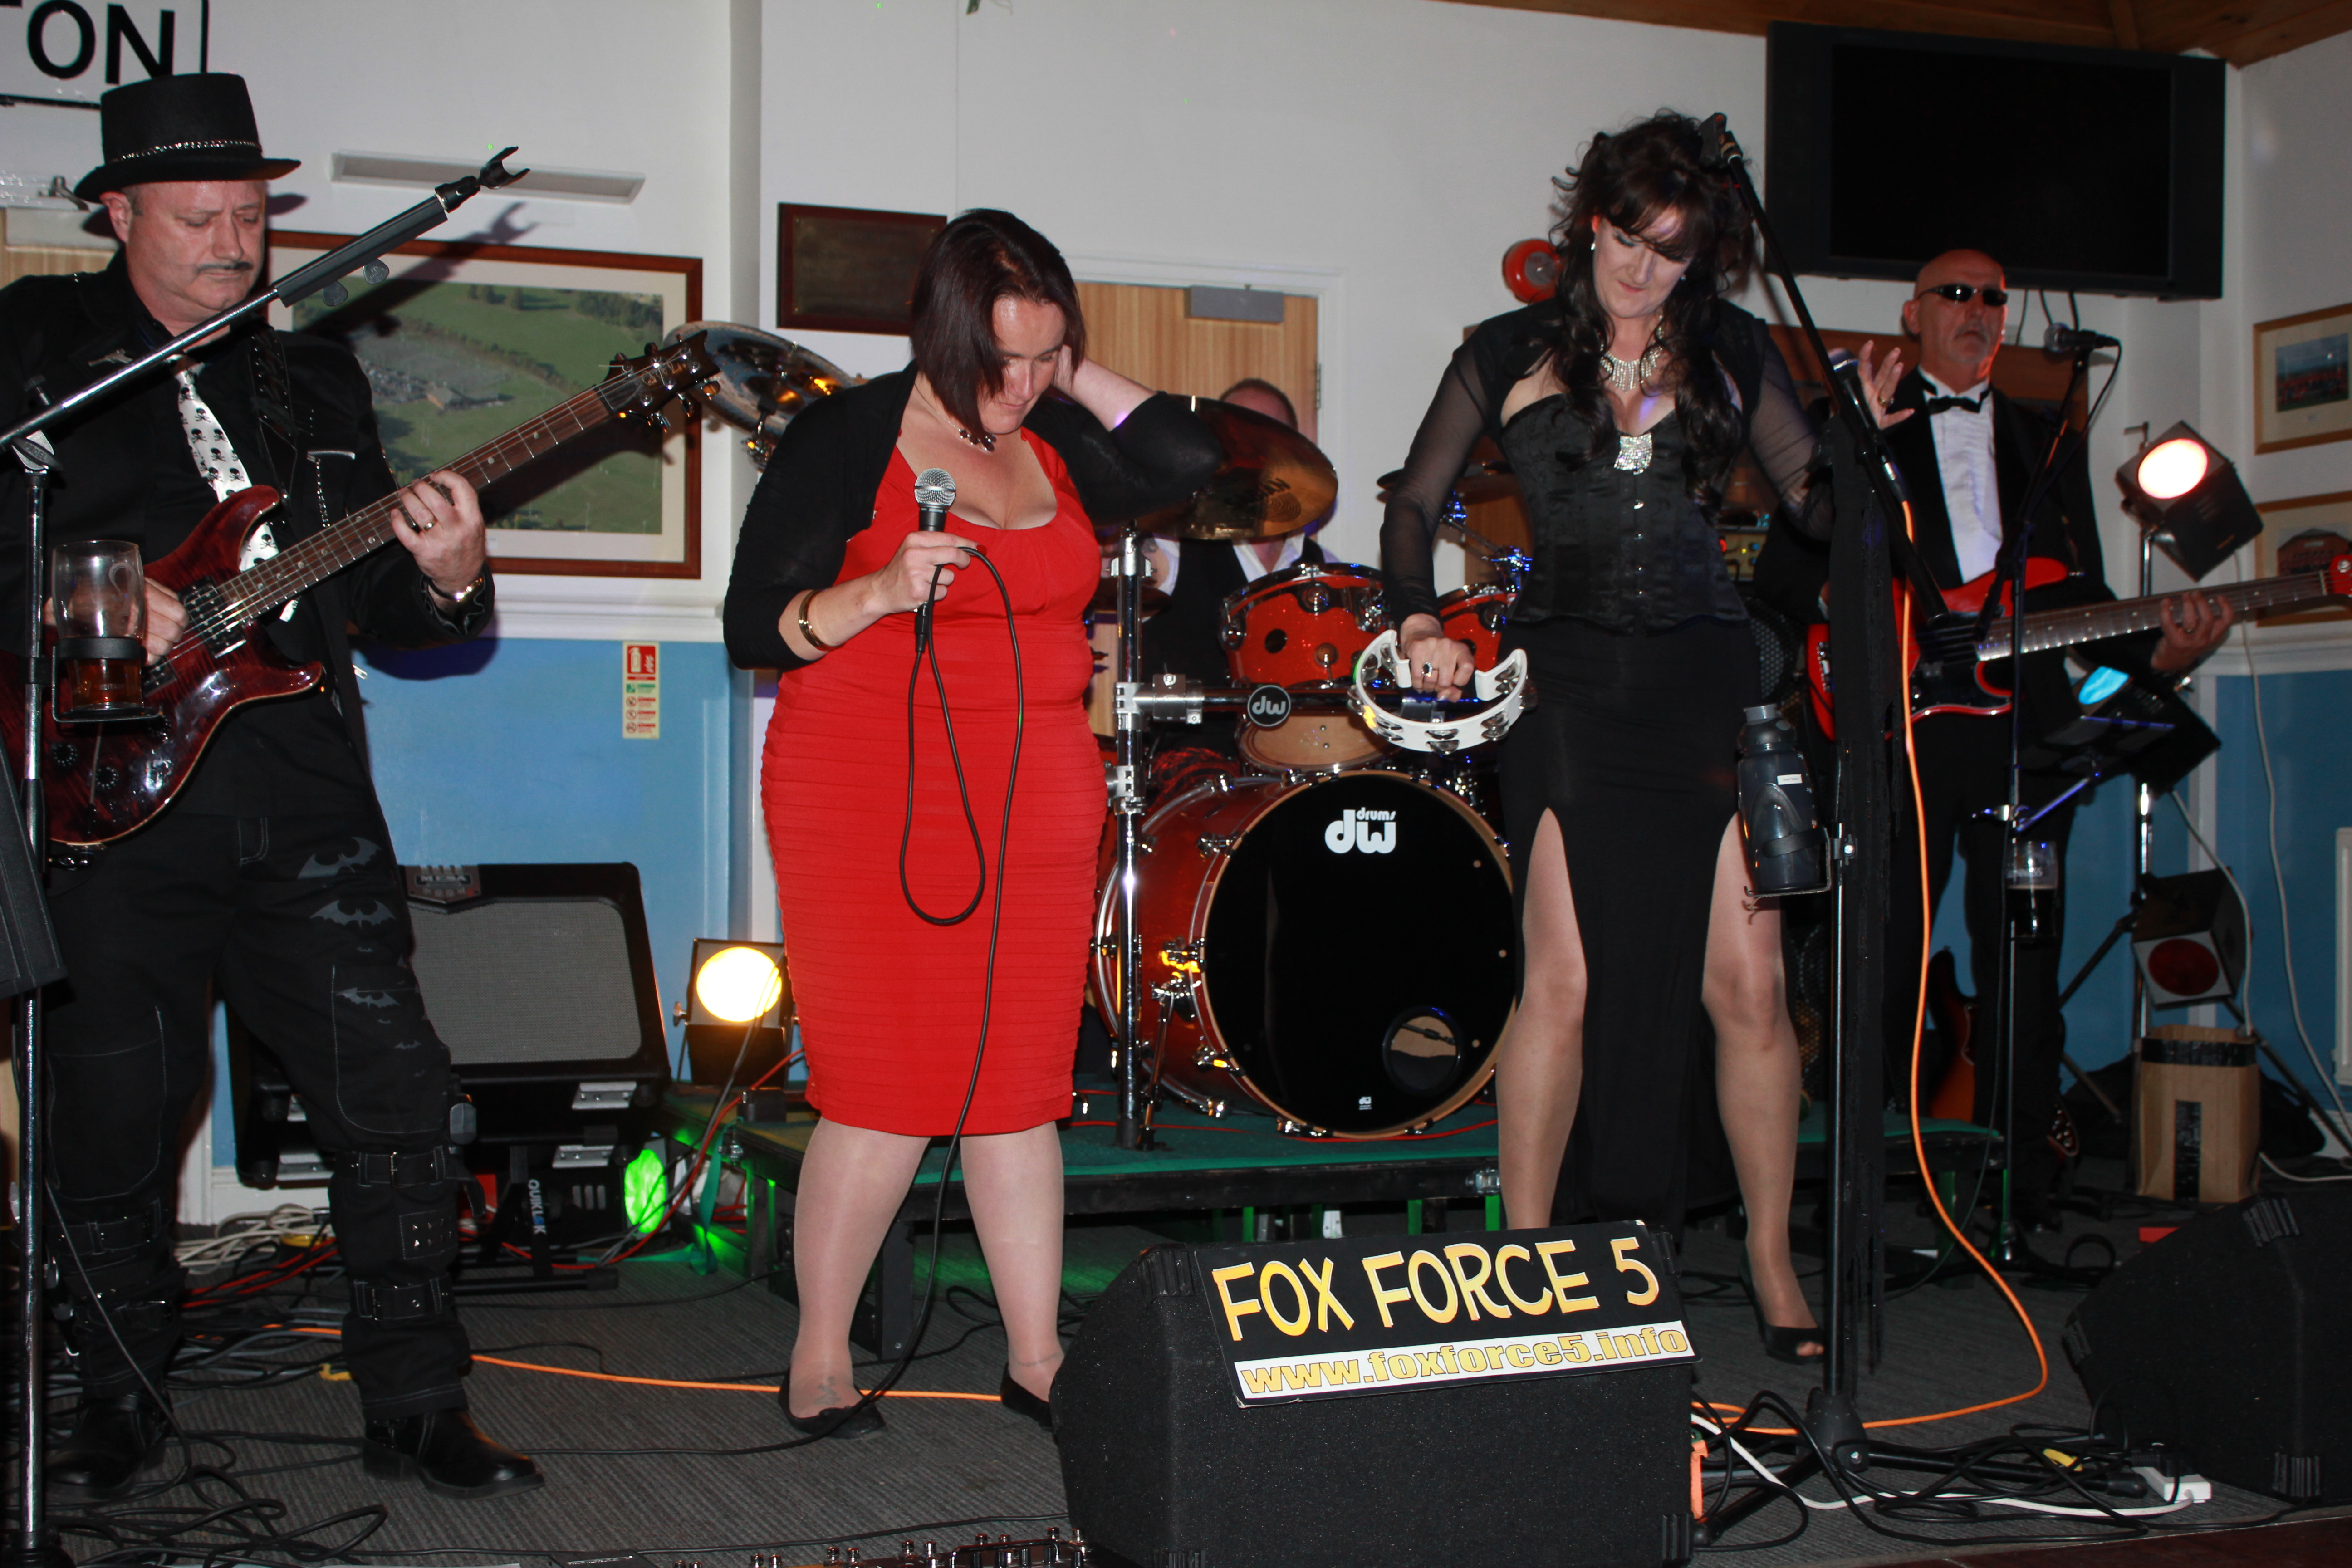 james bond aylesford rugby club 15th june 2013 fox force 5. Black Bedroom Furniture Sets. Home Design Ideas